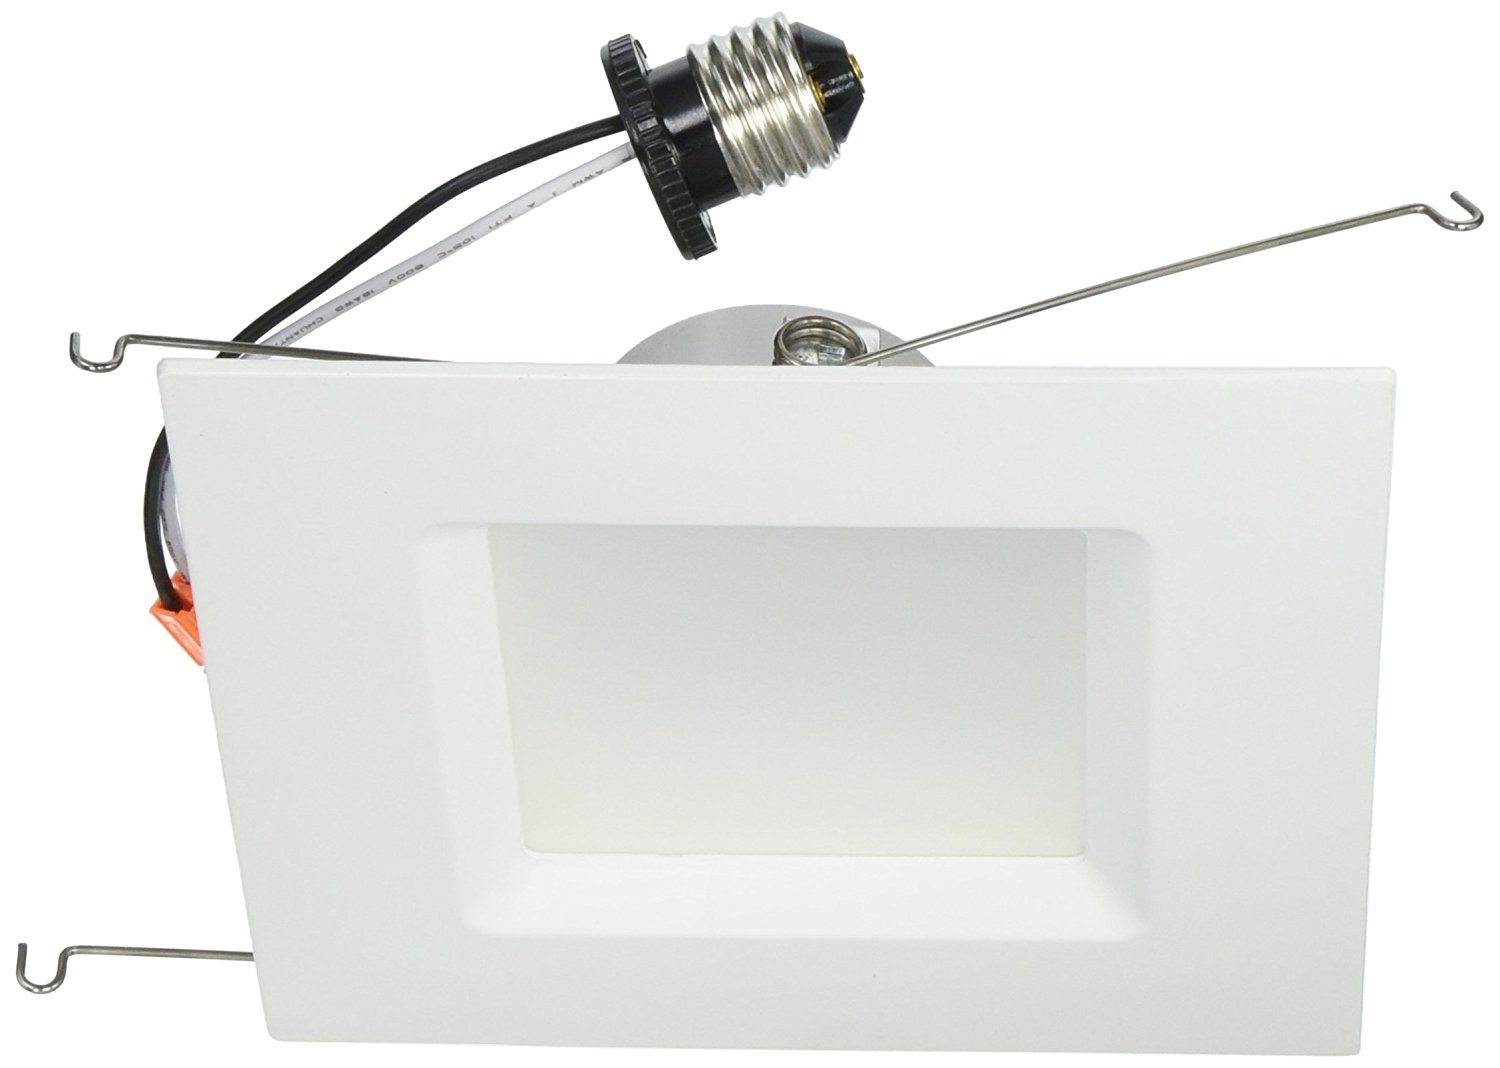 Goodlite G-83453 6 Inch Square Retrofit LED Recessed Lighting Fixture, 3000K Warm White, Fully Dimmable Downlight, UL Listed, 16W (120W Replacement), CRI 90 1200Lm